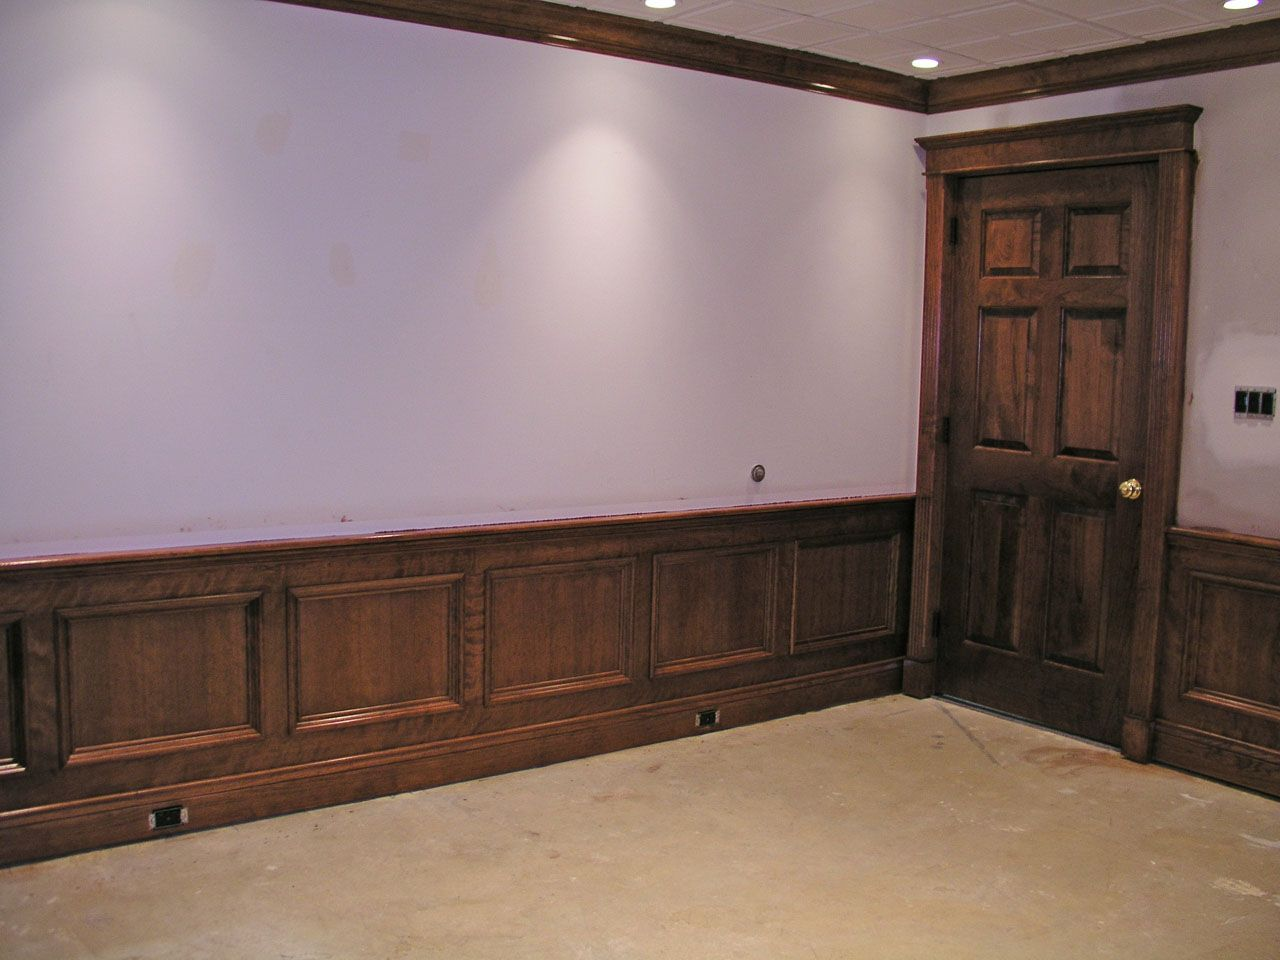 Walls Stained Wood Wainscoting Interior Classy